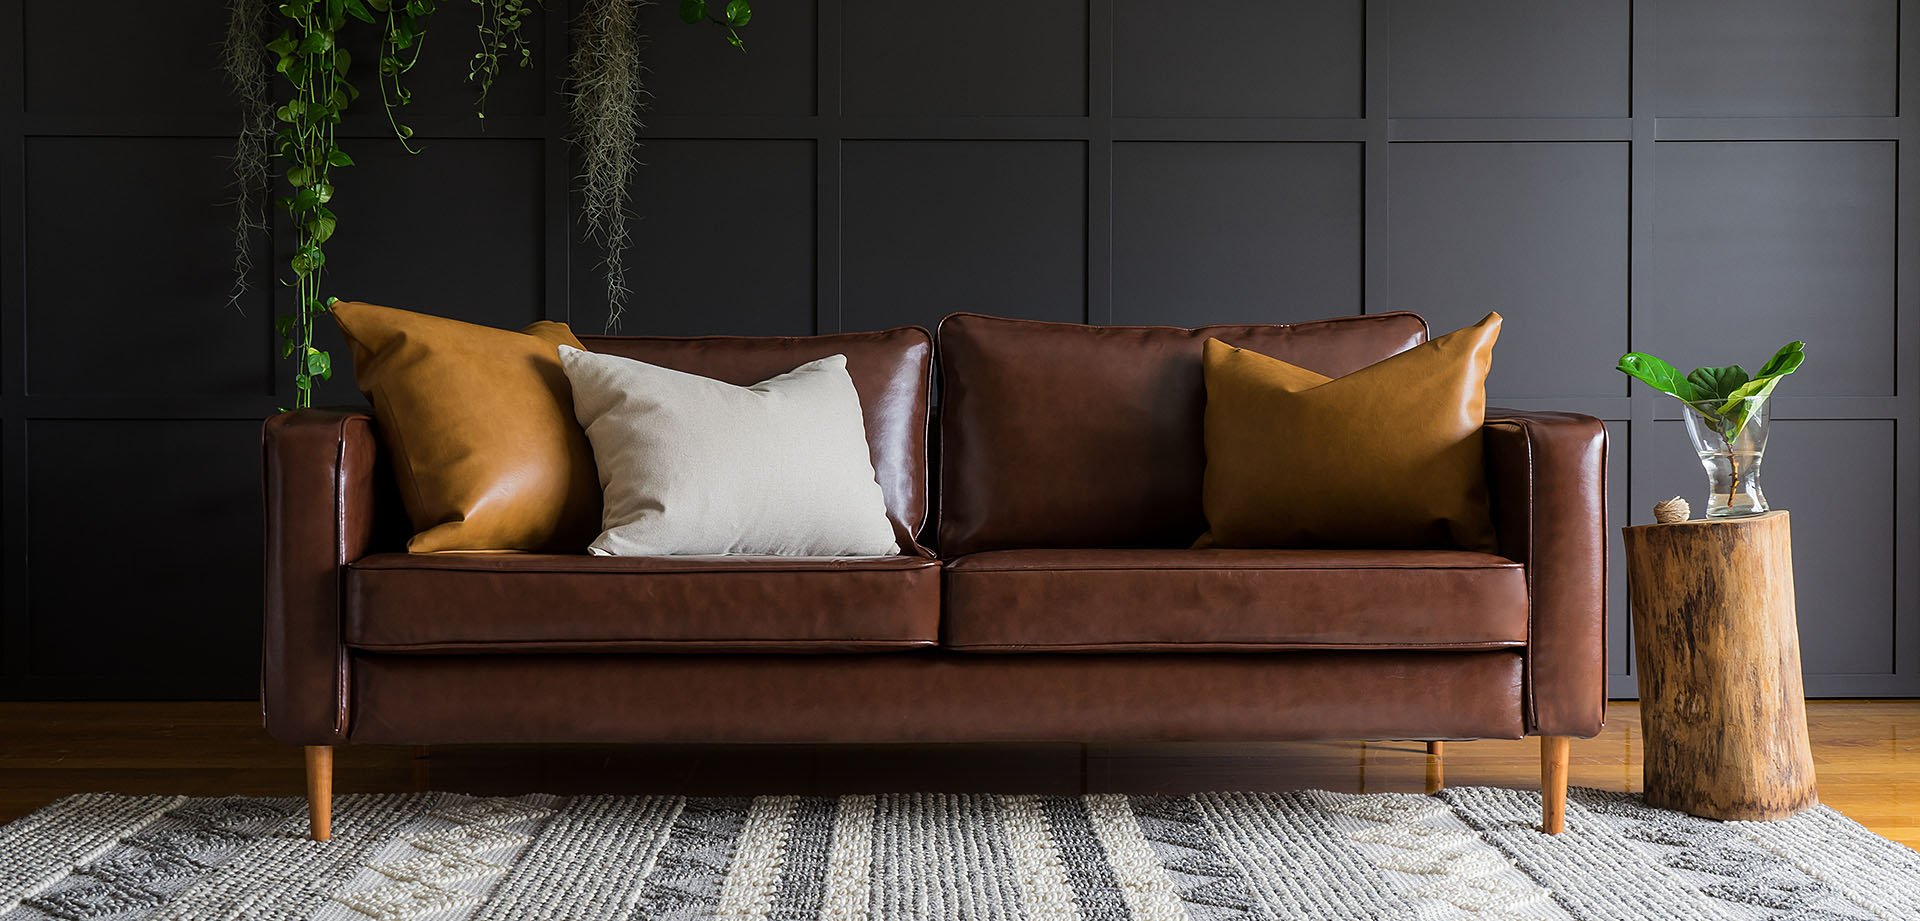 Sofa Arm Tray South Africa Leather Slipcovers Upholstery Isn T The Only Way To A Leather